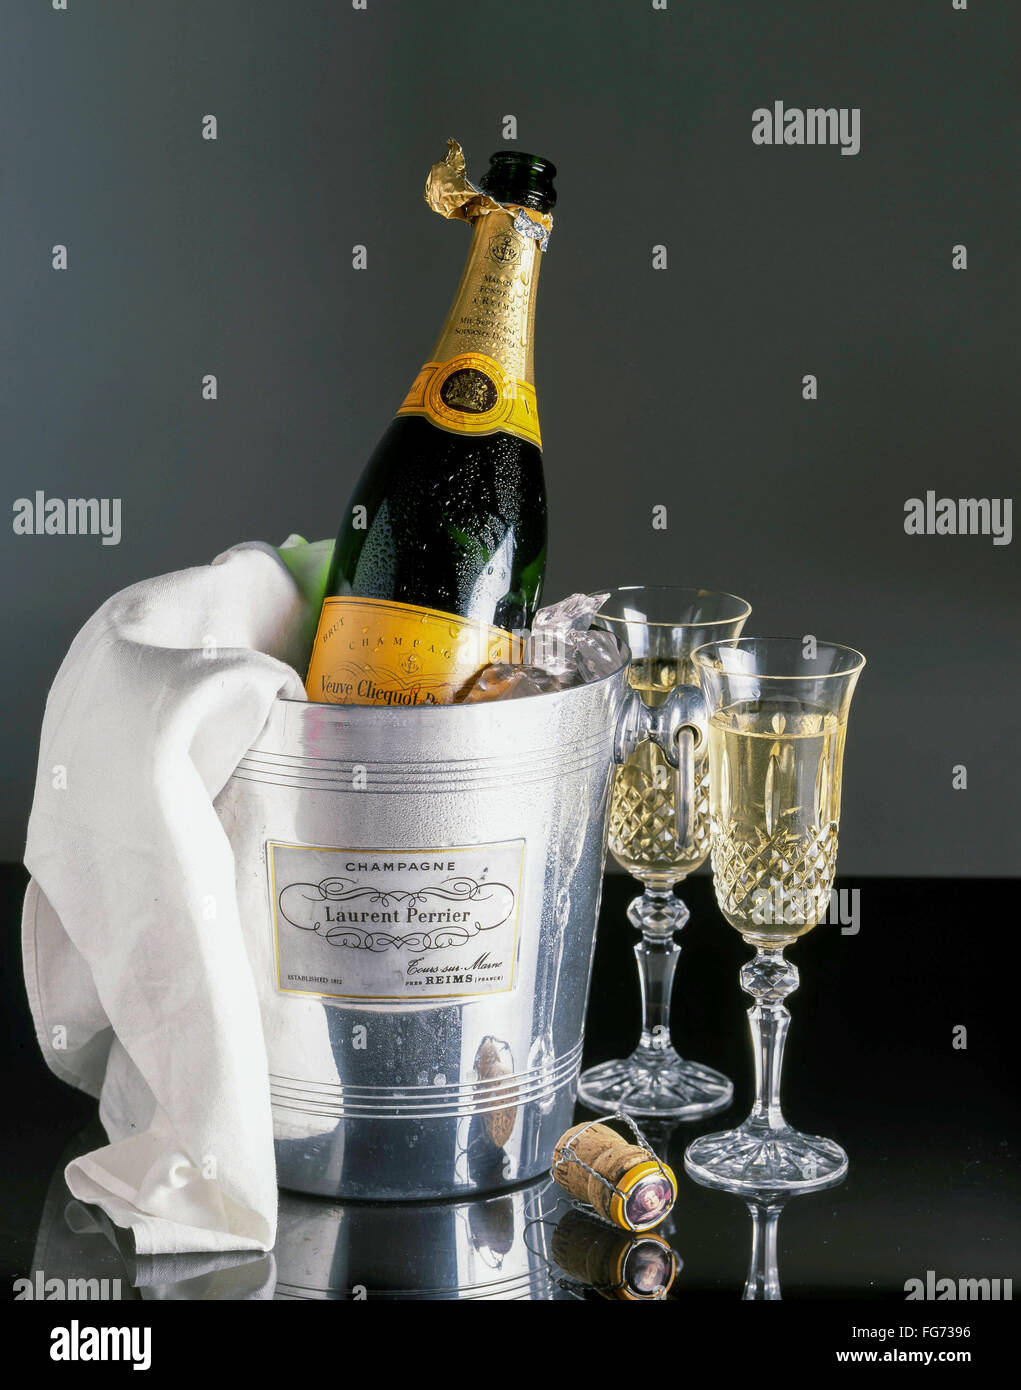 Veuve Clicquot champagne in ice-bucket with napkin and crystal glasses, London, England, United Kingdom - Stock Image